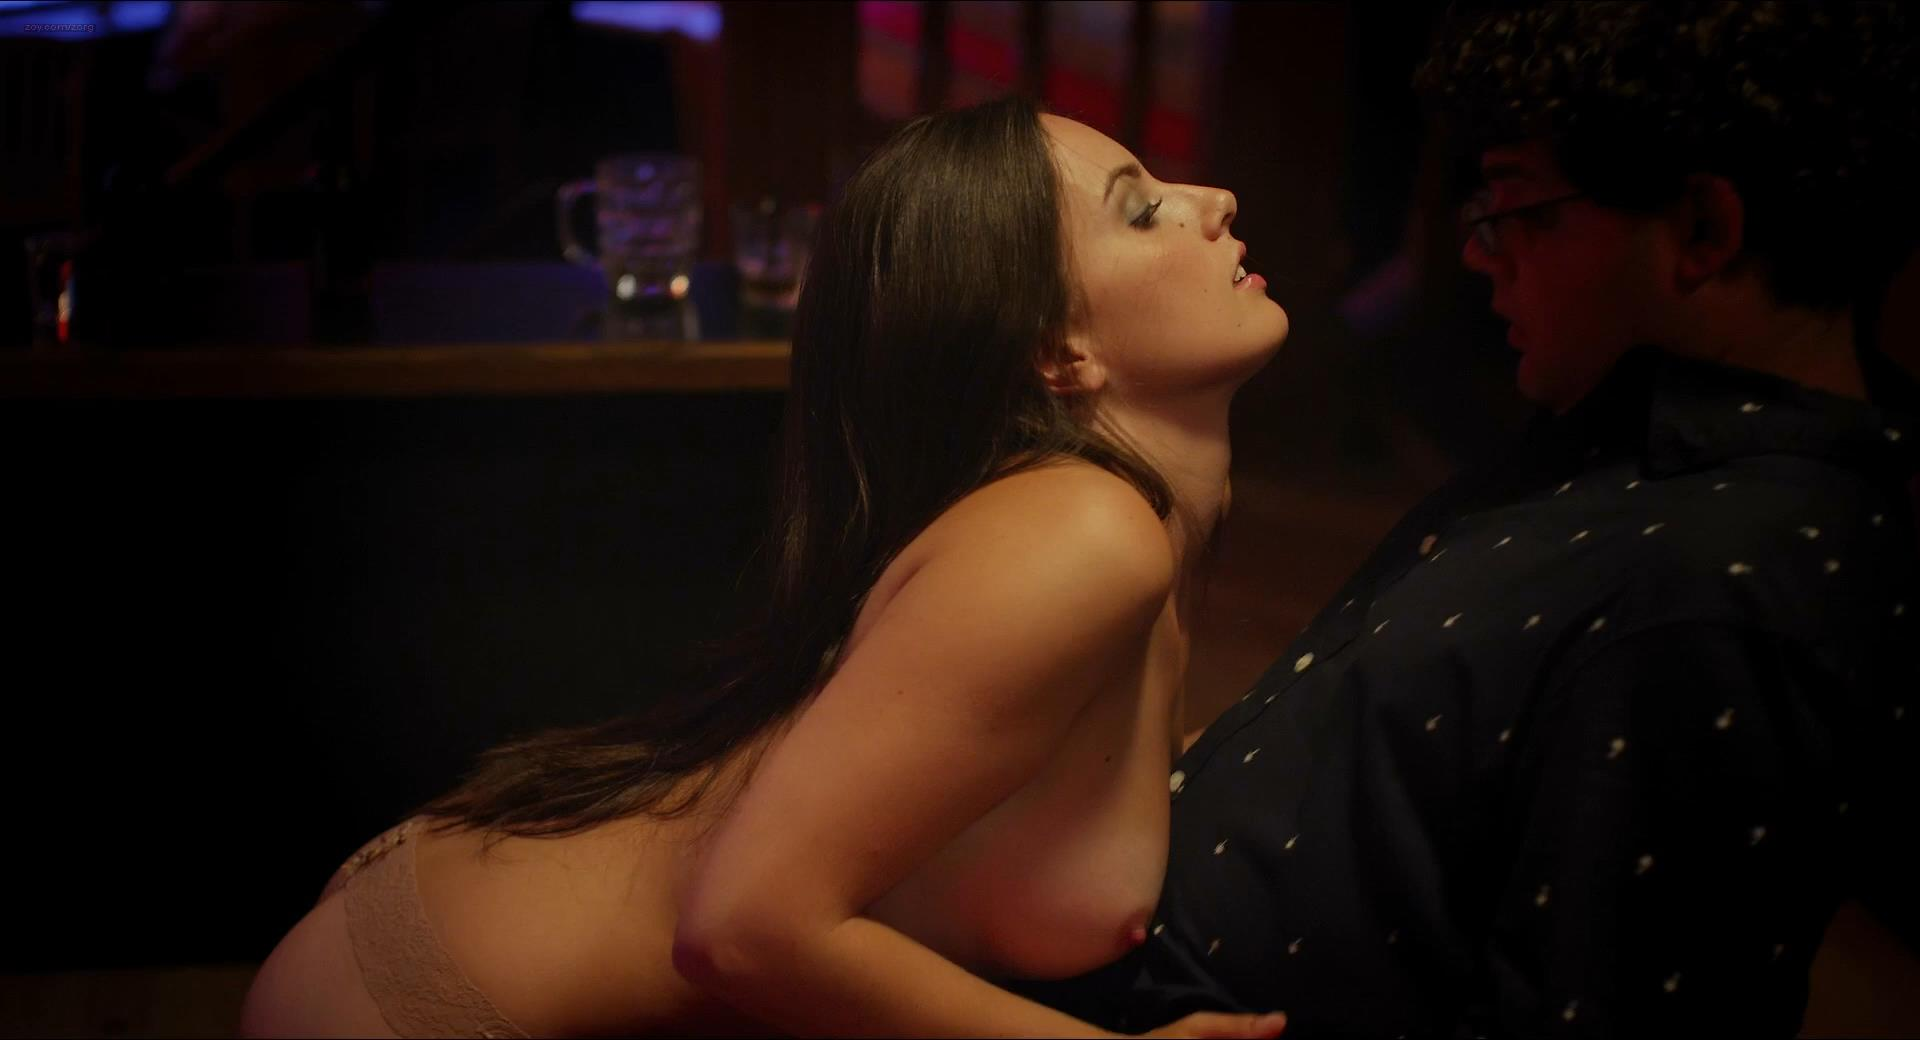 Karyn Halpin nude as stripper Merritt Patterson hot and sex and others nude - Kid Cannabis (2014) hd1080p